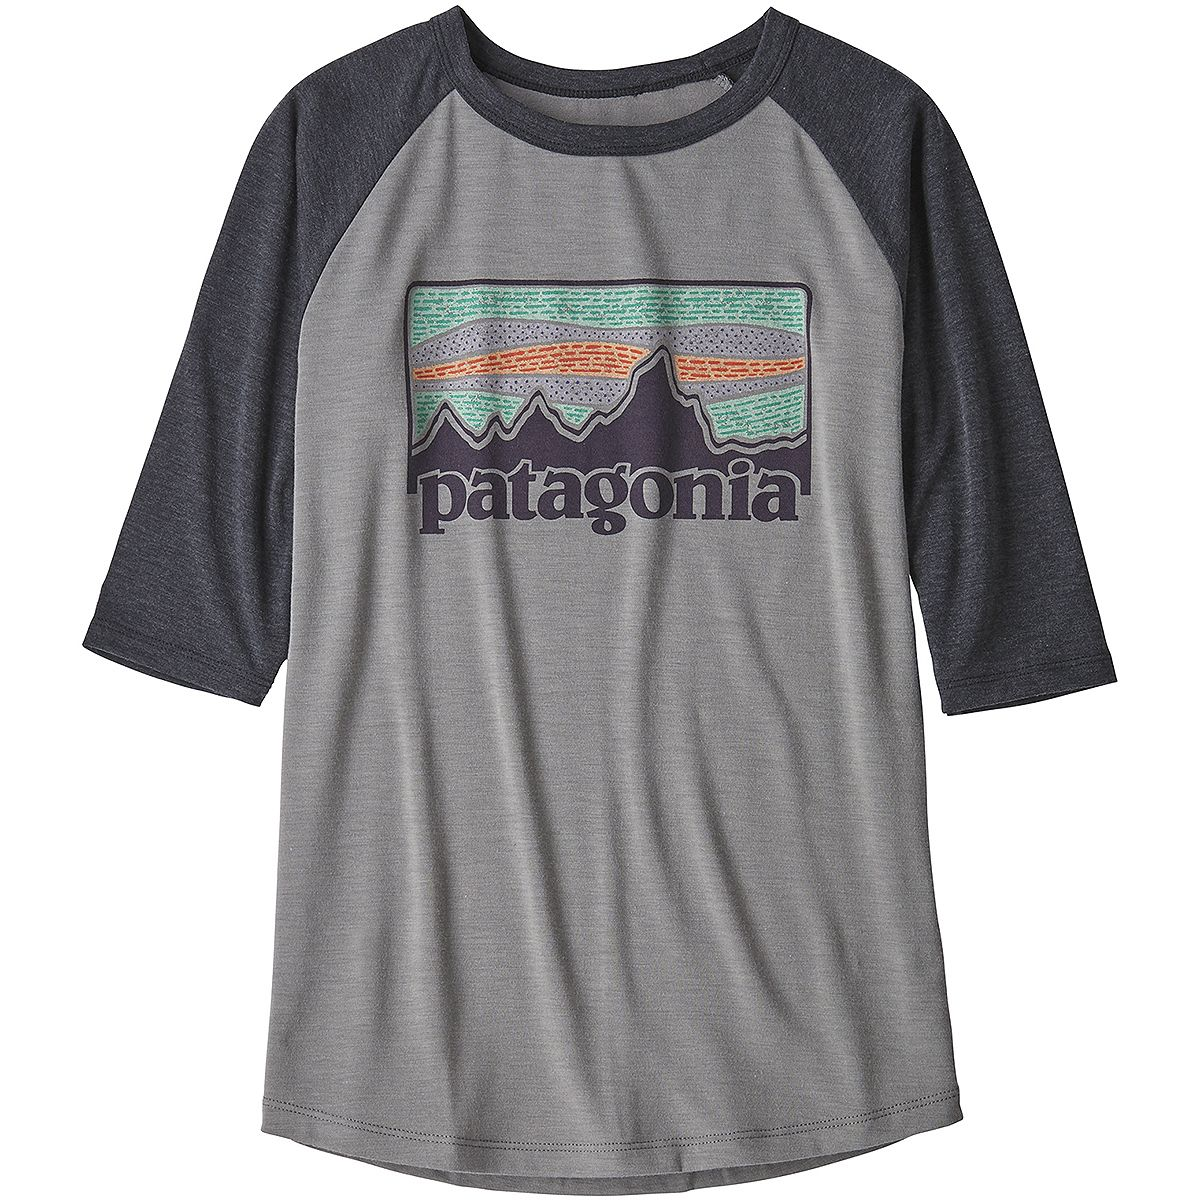 Patagonia 1/2-Sleeve Graphic Tee